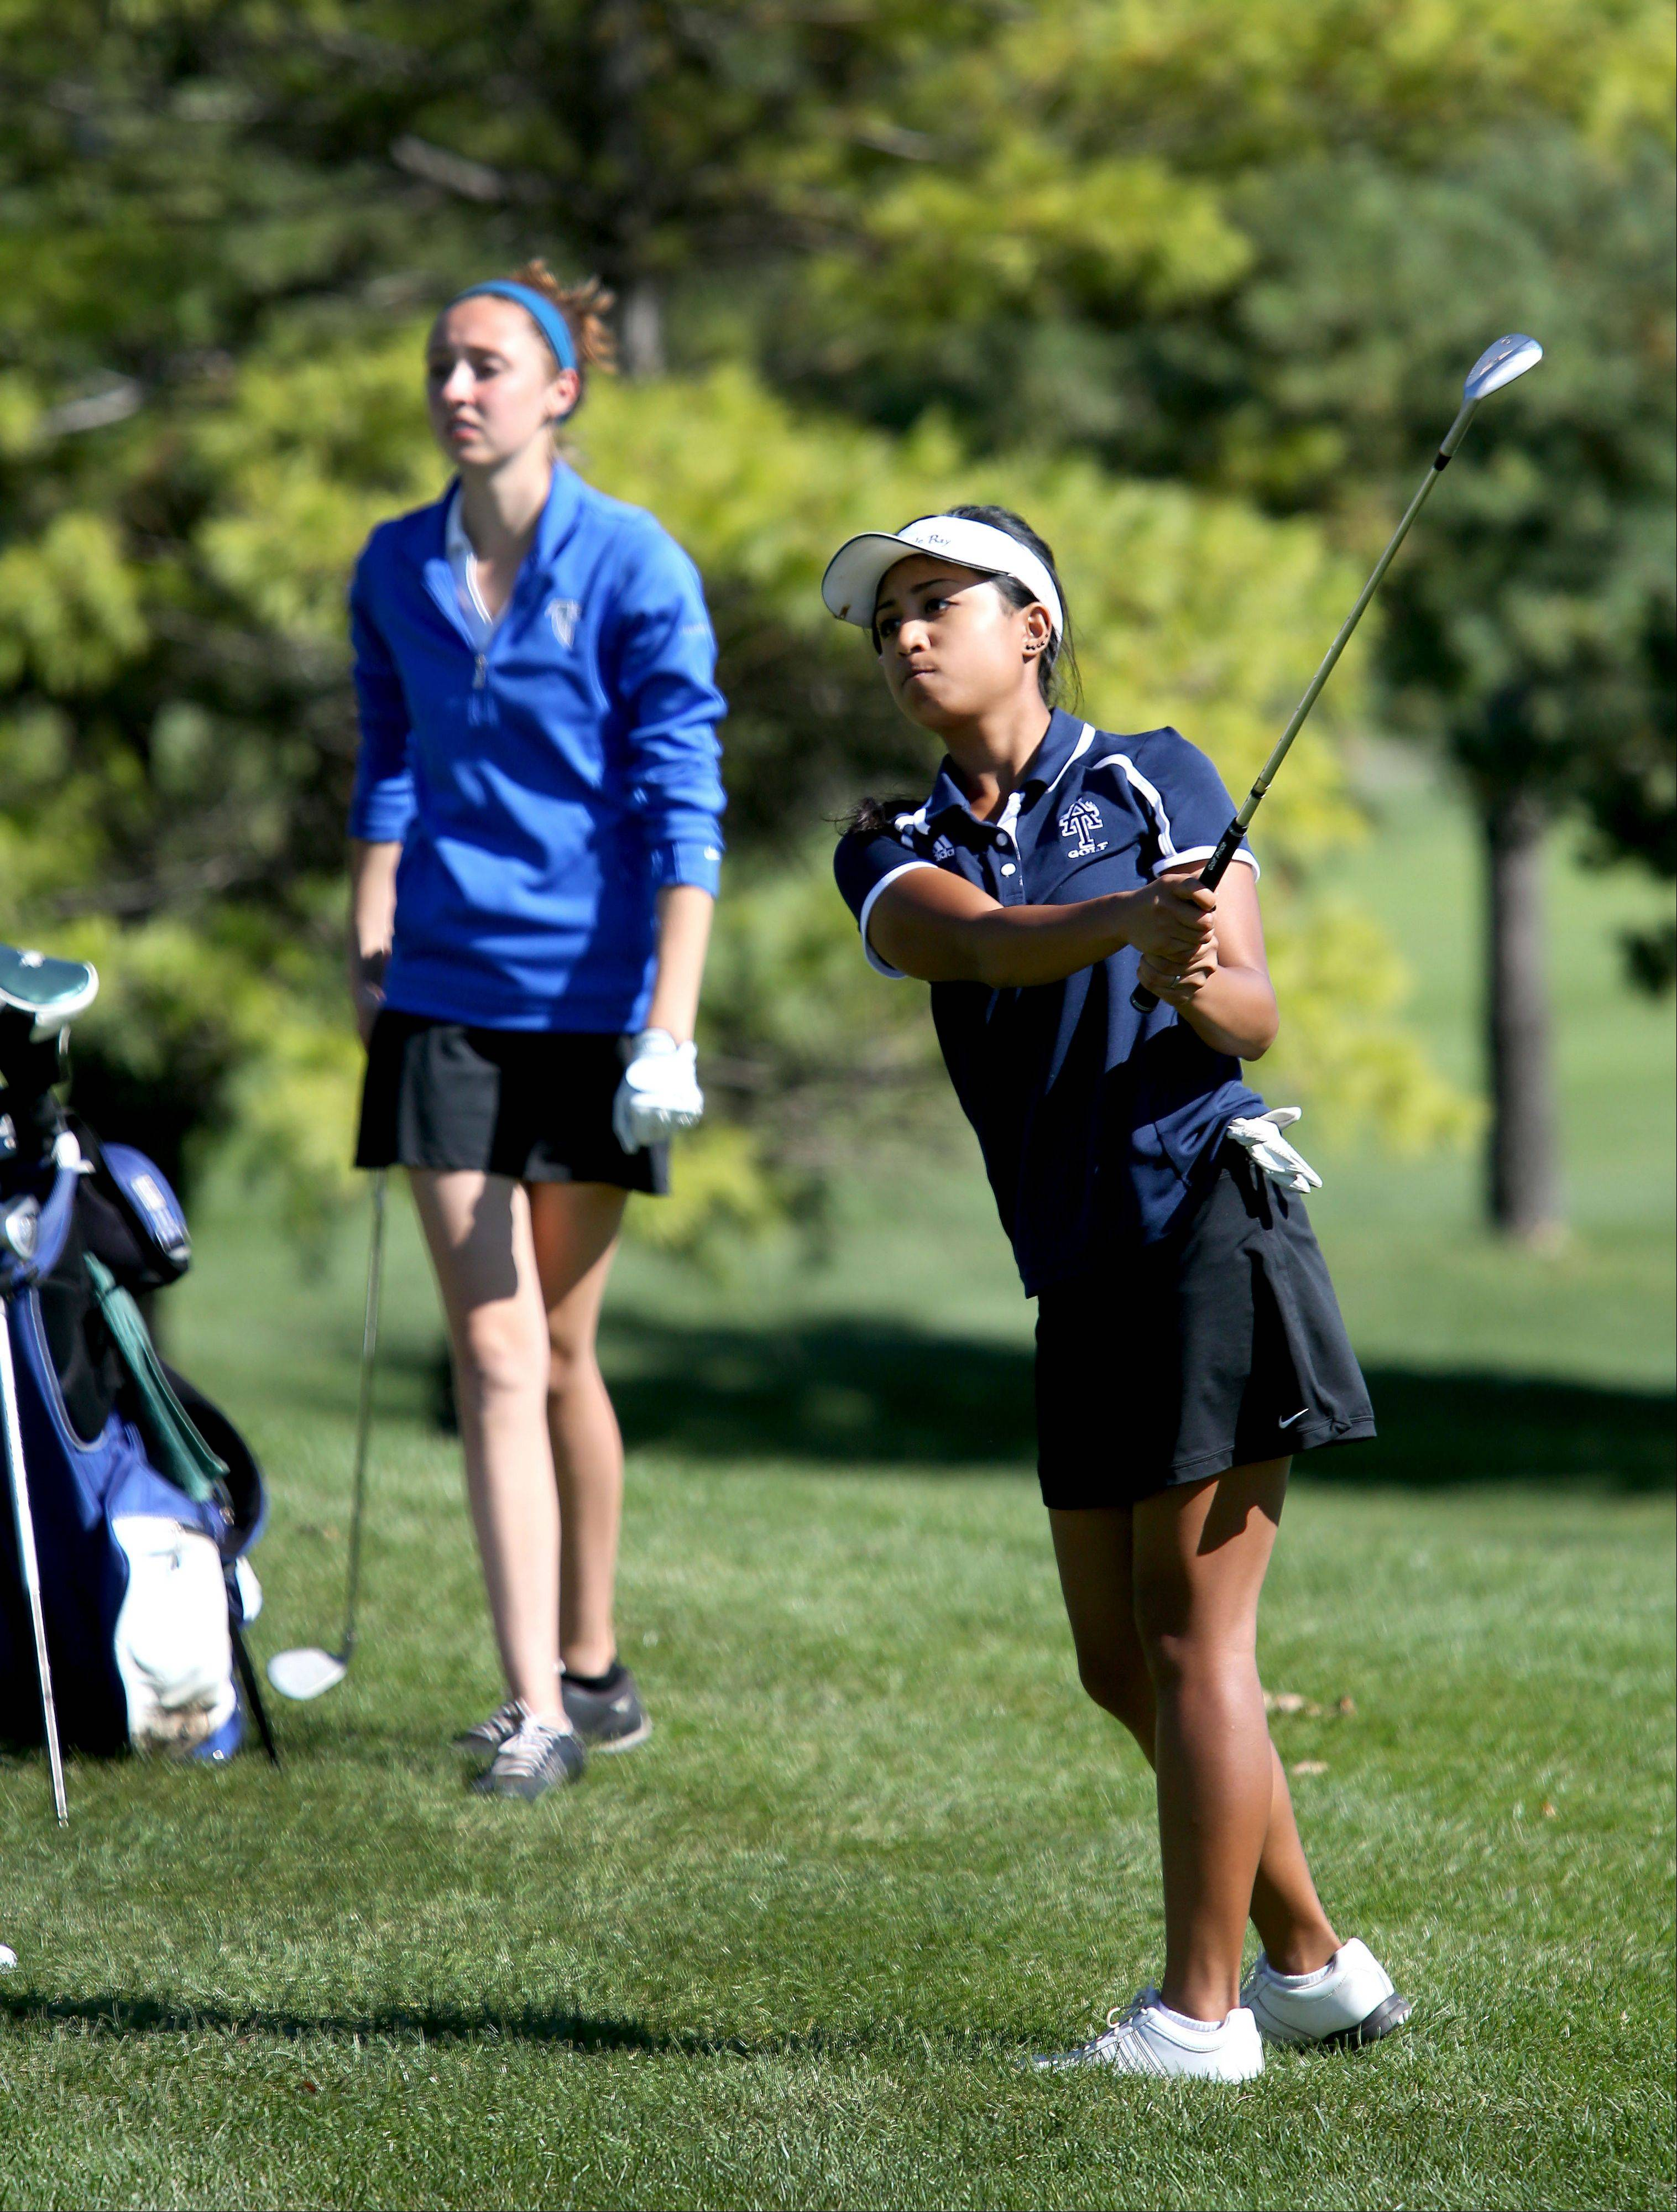 Gia De La Cruz of Addison Trail, right, watches her drive on the 11th tee as Caitlin Berry of Wheaton North looks on during Class AA Glenbard East regional girls golf at Glendale Lakes Golf Course in Glendale Heights on Wednesday.